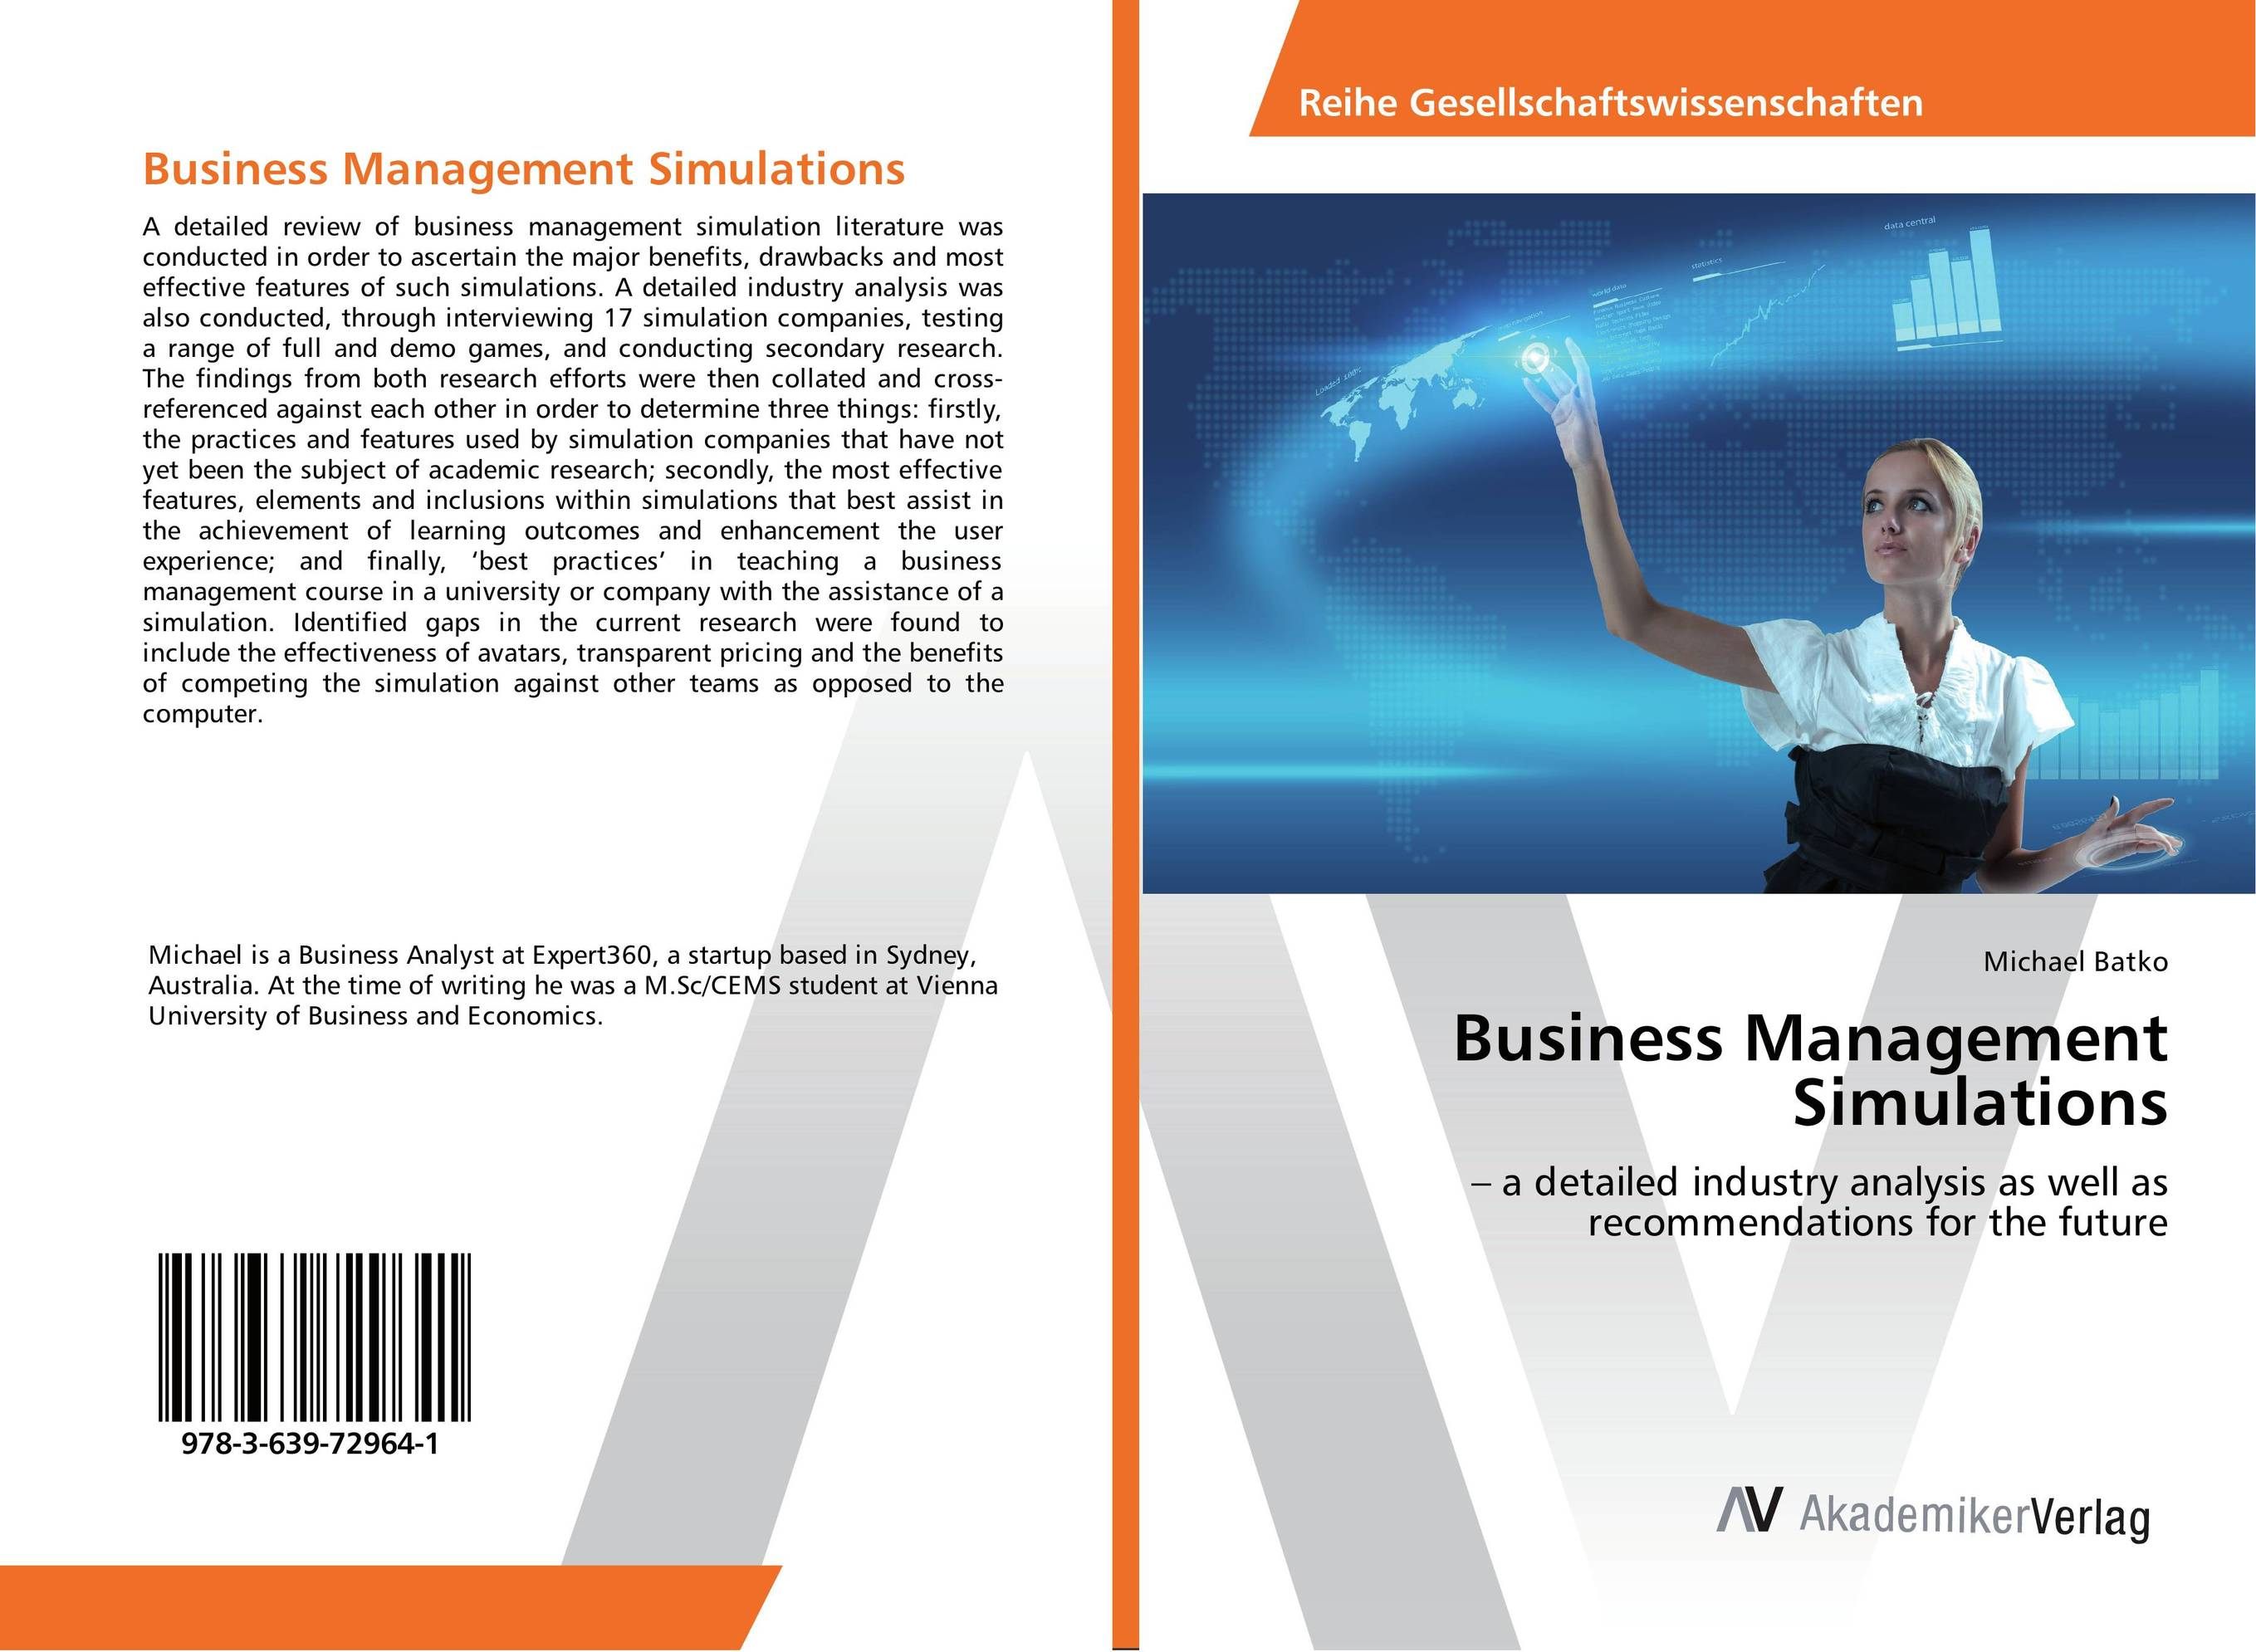 Business Management Simulations franke bibliotheca cardiologica ballistocardiogra phy research and computer diagnosis